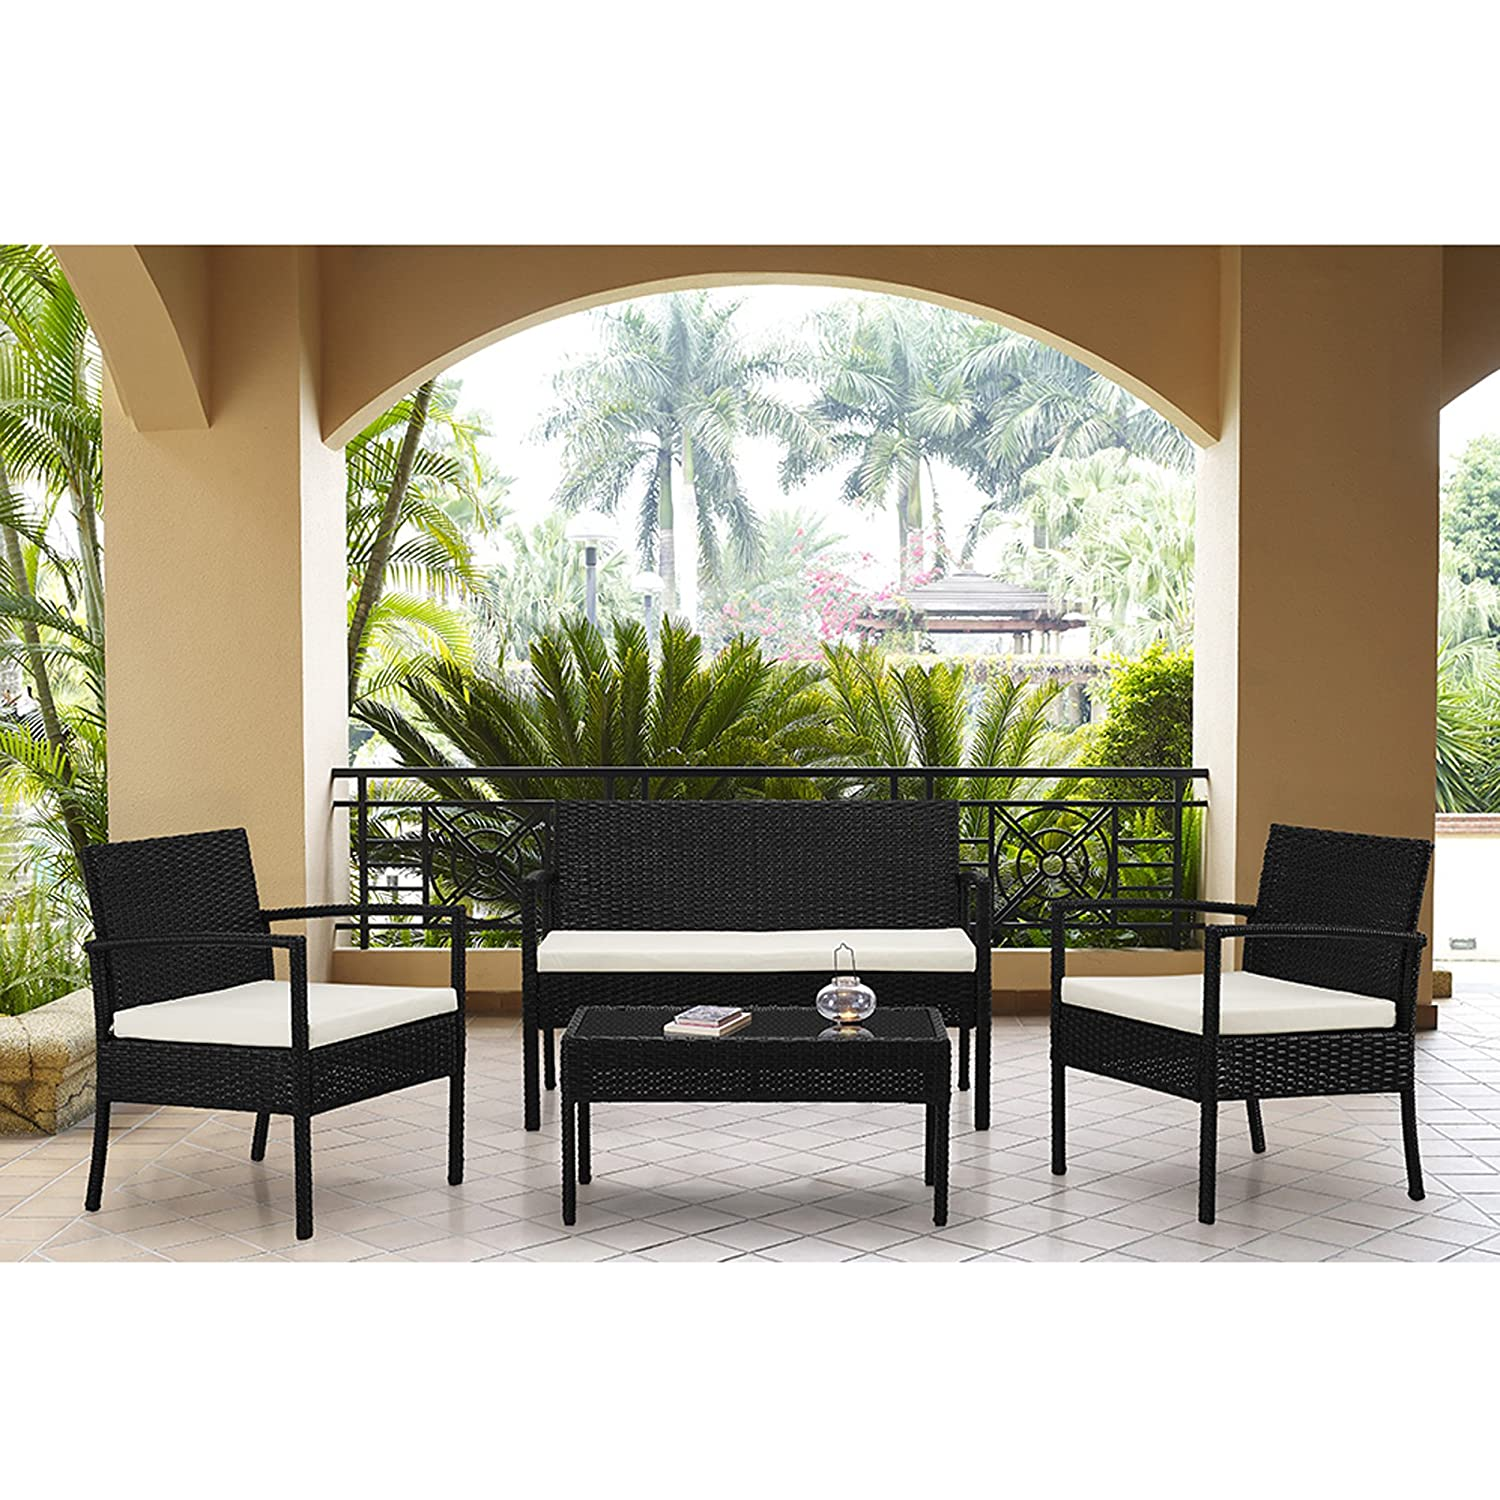 Amazon Rattan Wicker Patio Sofa Dining Table Set 4 Piece Balcony Outdoor Garden Pool Furniture White Cushioned Seat Black Lawn